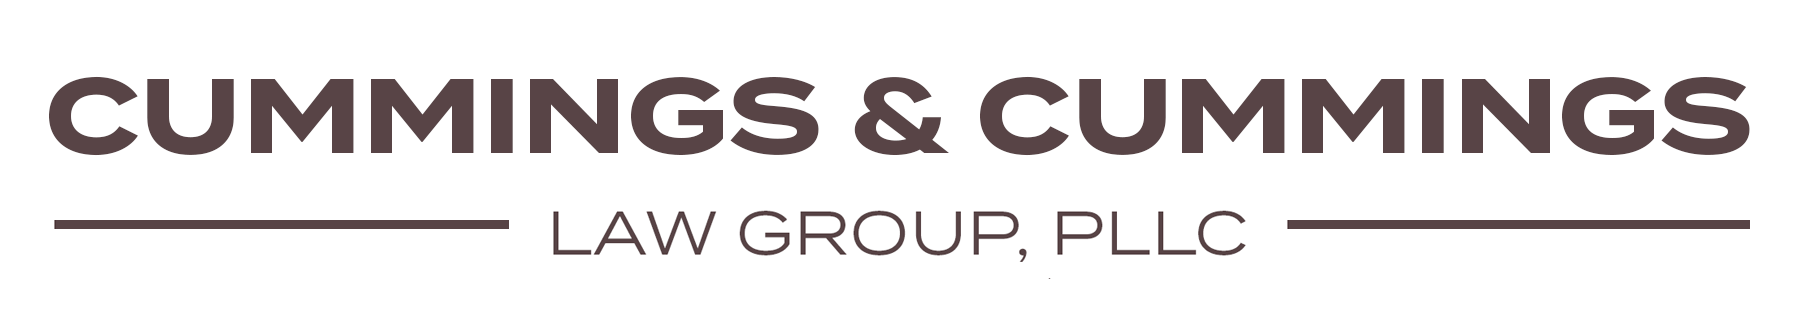 Cummings & Cummings Law Group